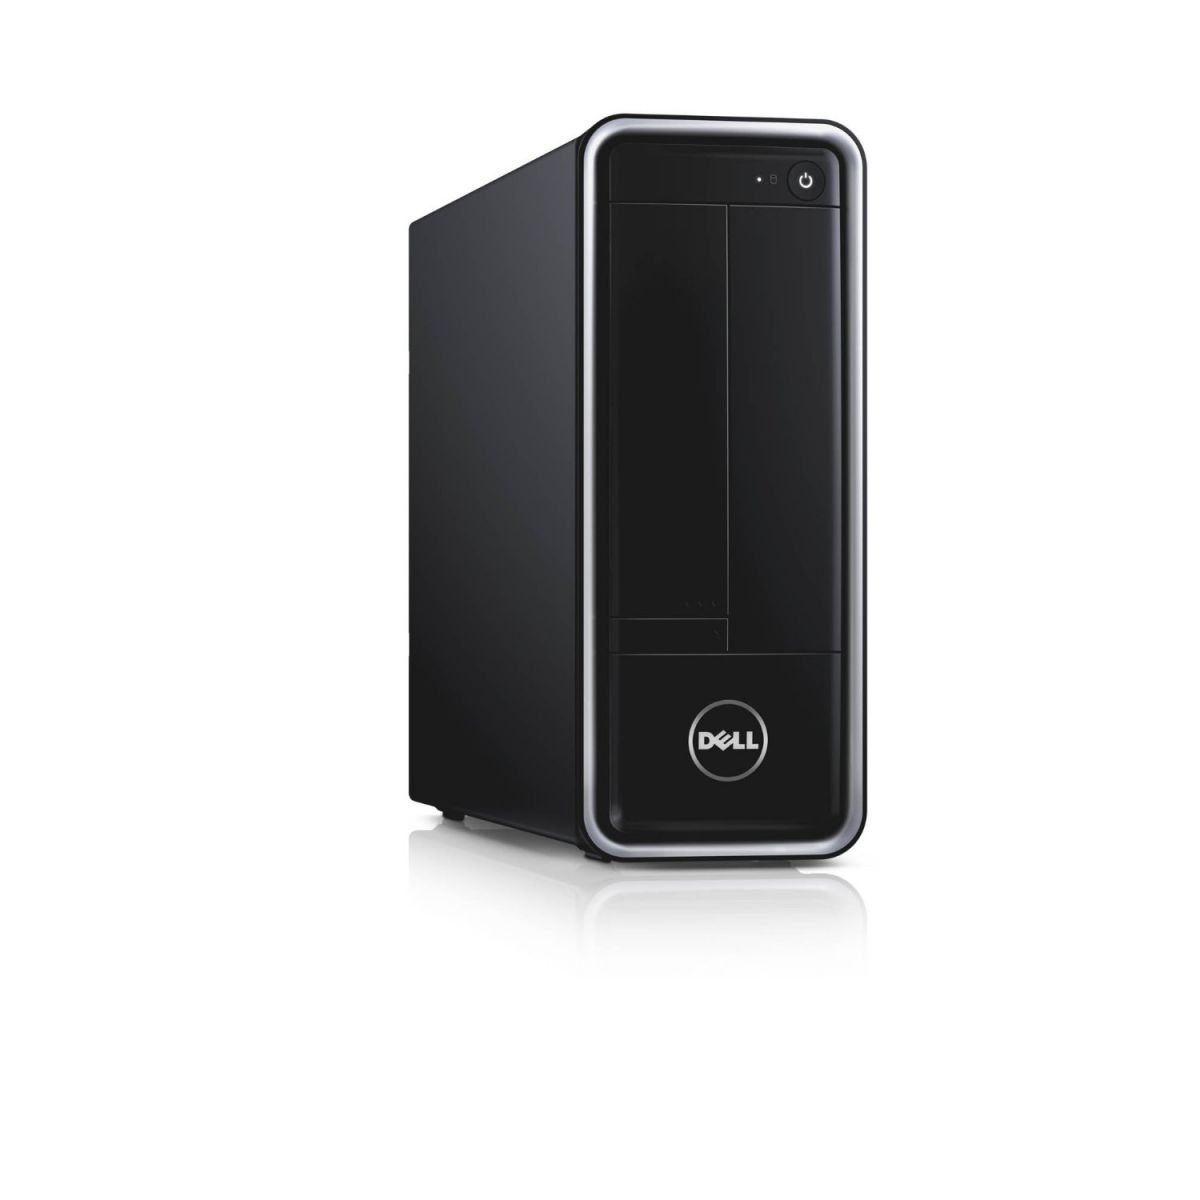 CPU DELL 3647 I3-4170 3.7GHZ | 4GB | 500GB | DVD | WIFI | TECLADO | MOUSE | W10HOME